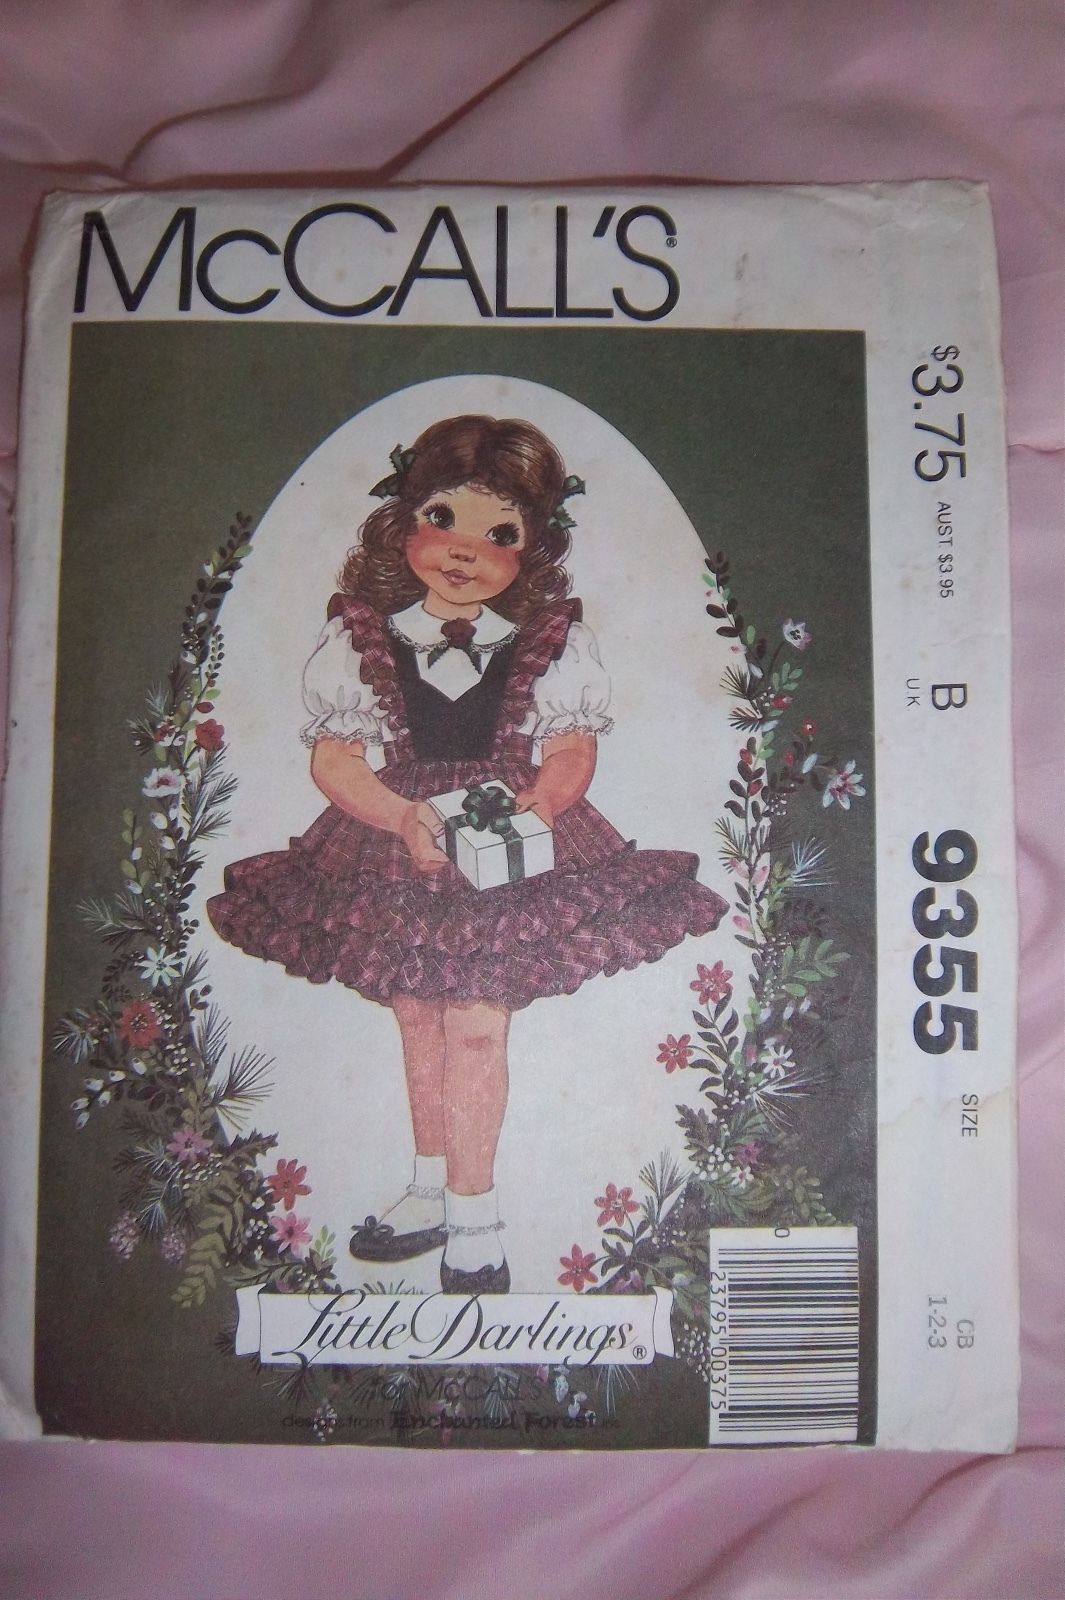 Mccalls 9355 1 Little Darlings Dress Kind and similar items